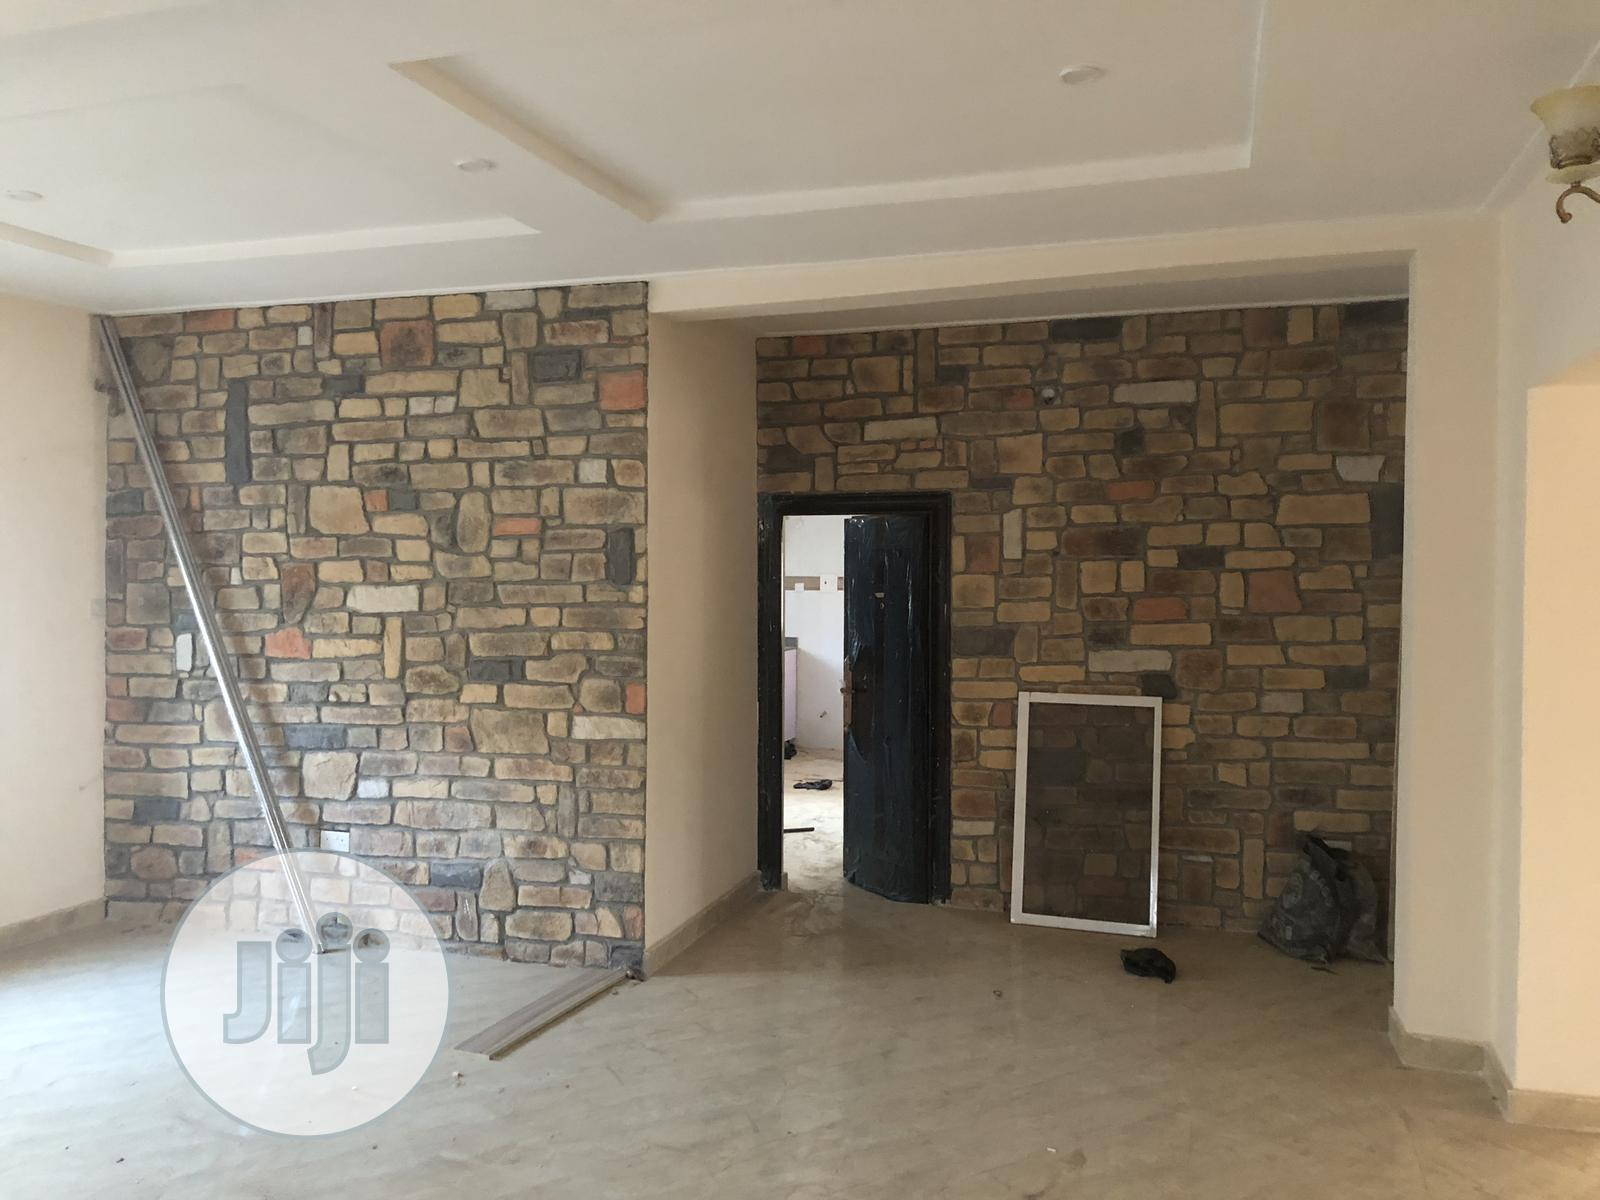 Brick And Stone Tiles For Wall Cladding | Building Materials for sale in Asokoro, Abuja (FCT) State, Nigeria